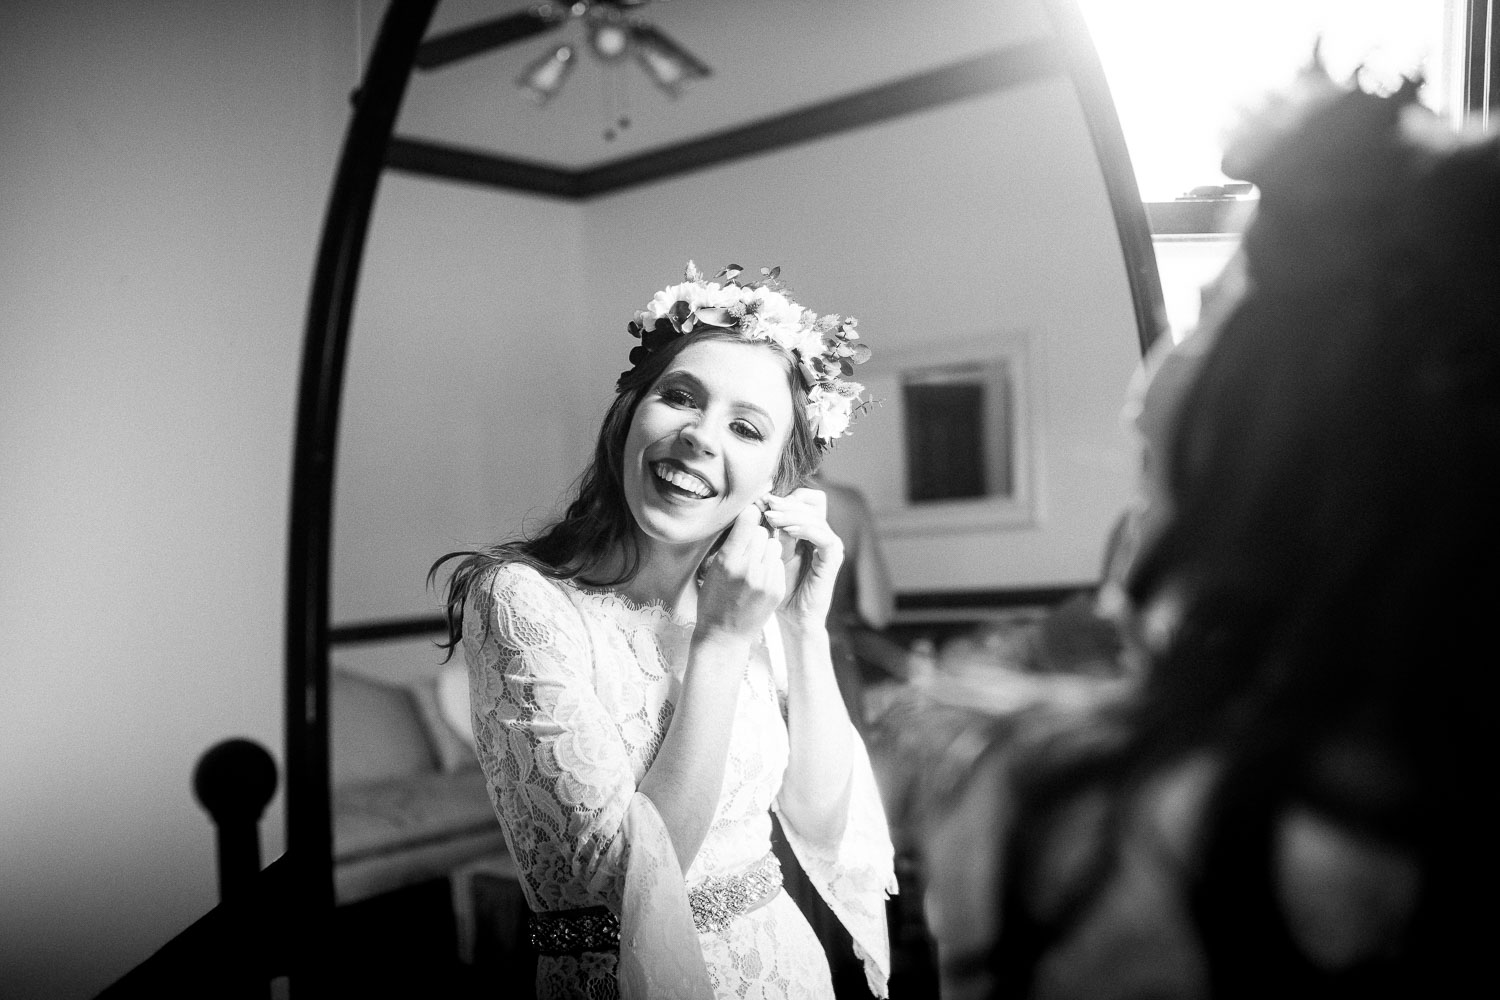 NashvilleWeddingPhotographer (43 of 44).jpg